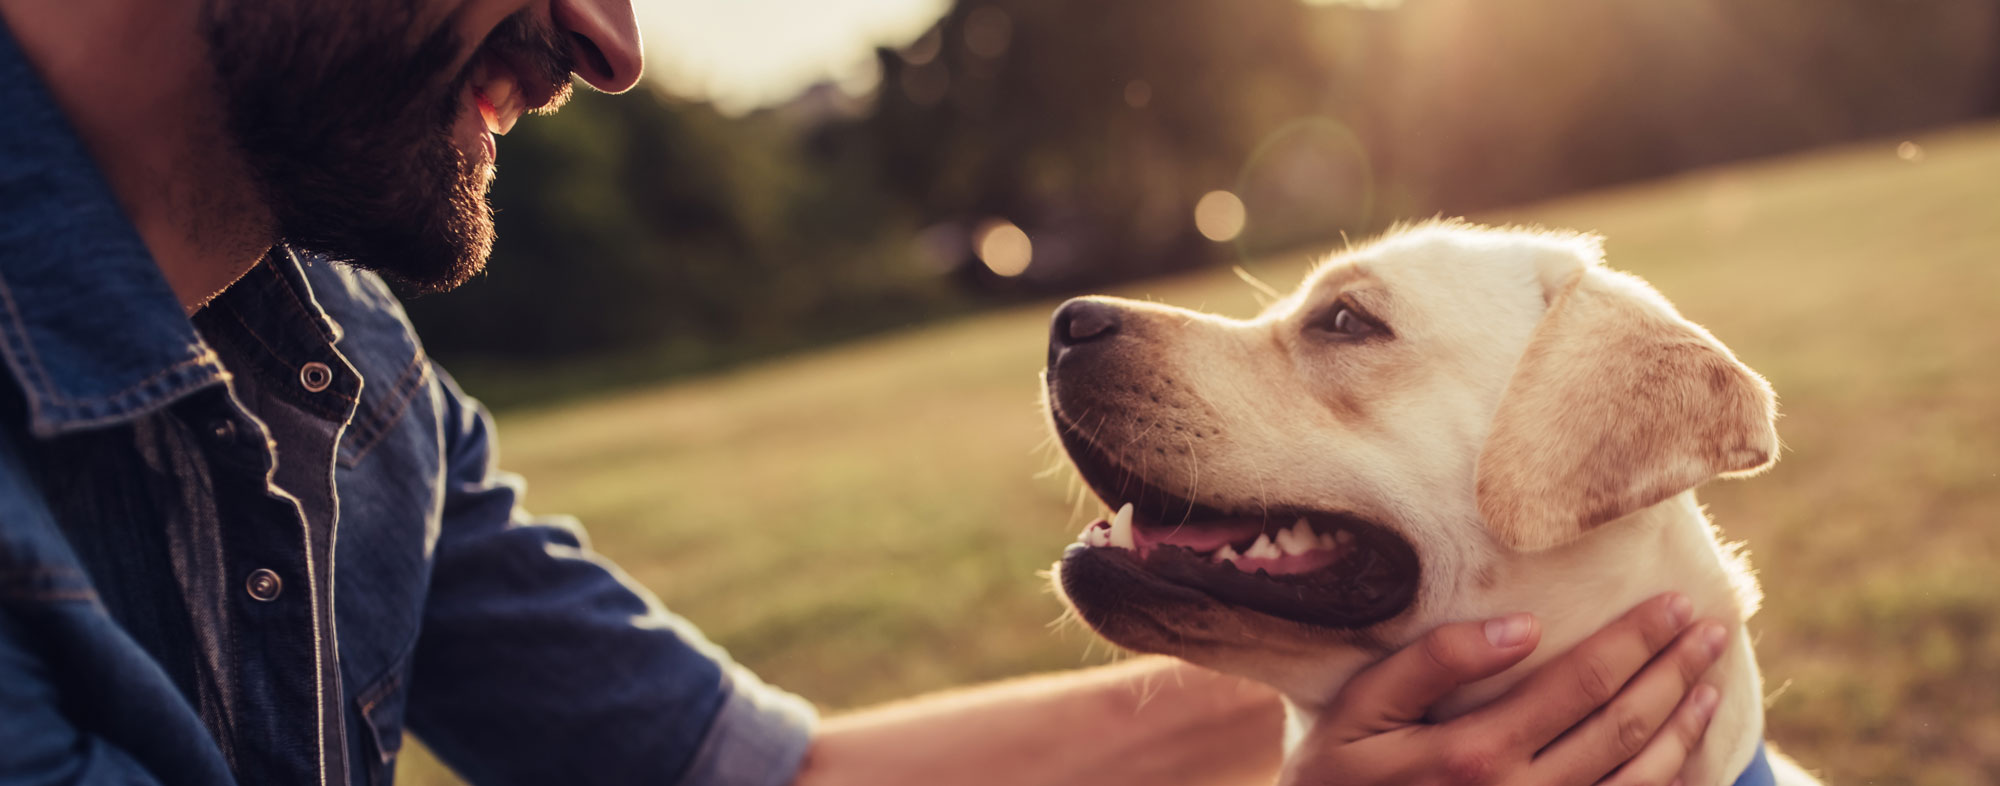 Man petting dog. What are the symptoms of coronavirus in dogs?